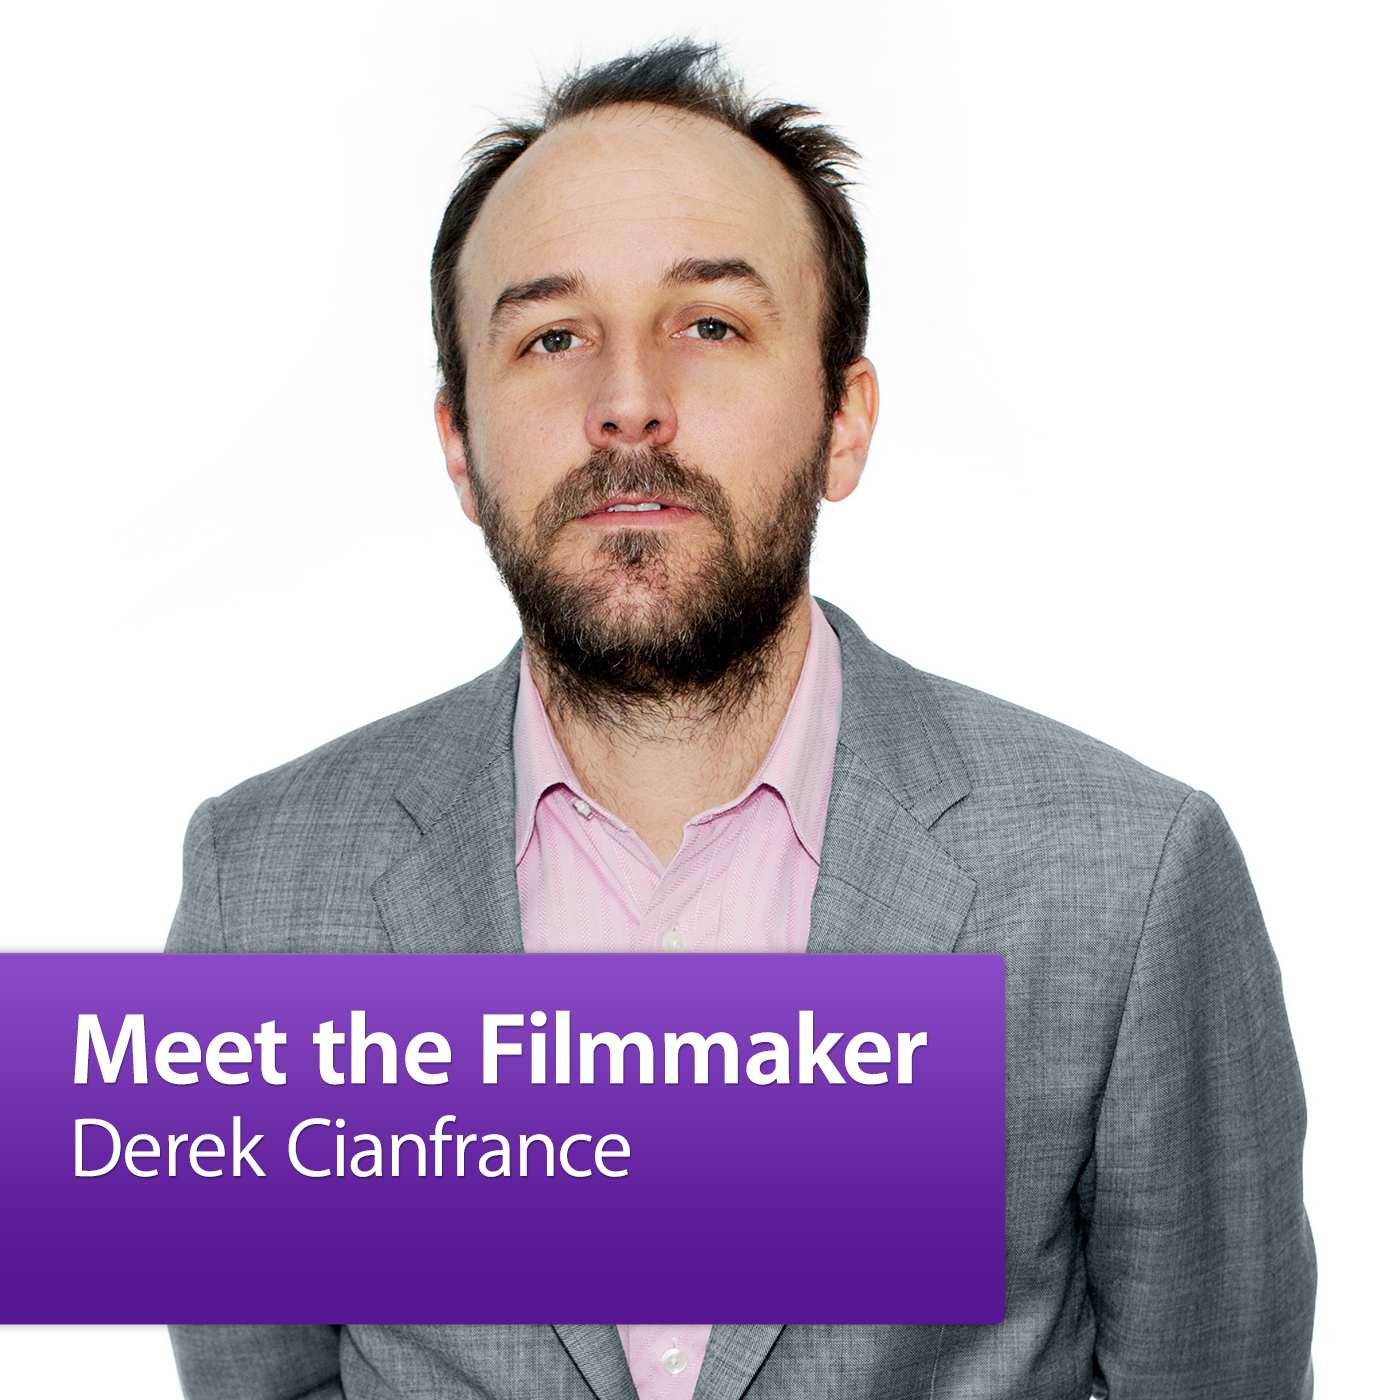 Derek Cianfrance: Meet the Filmmaker